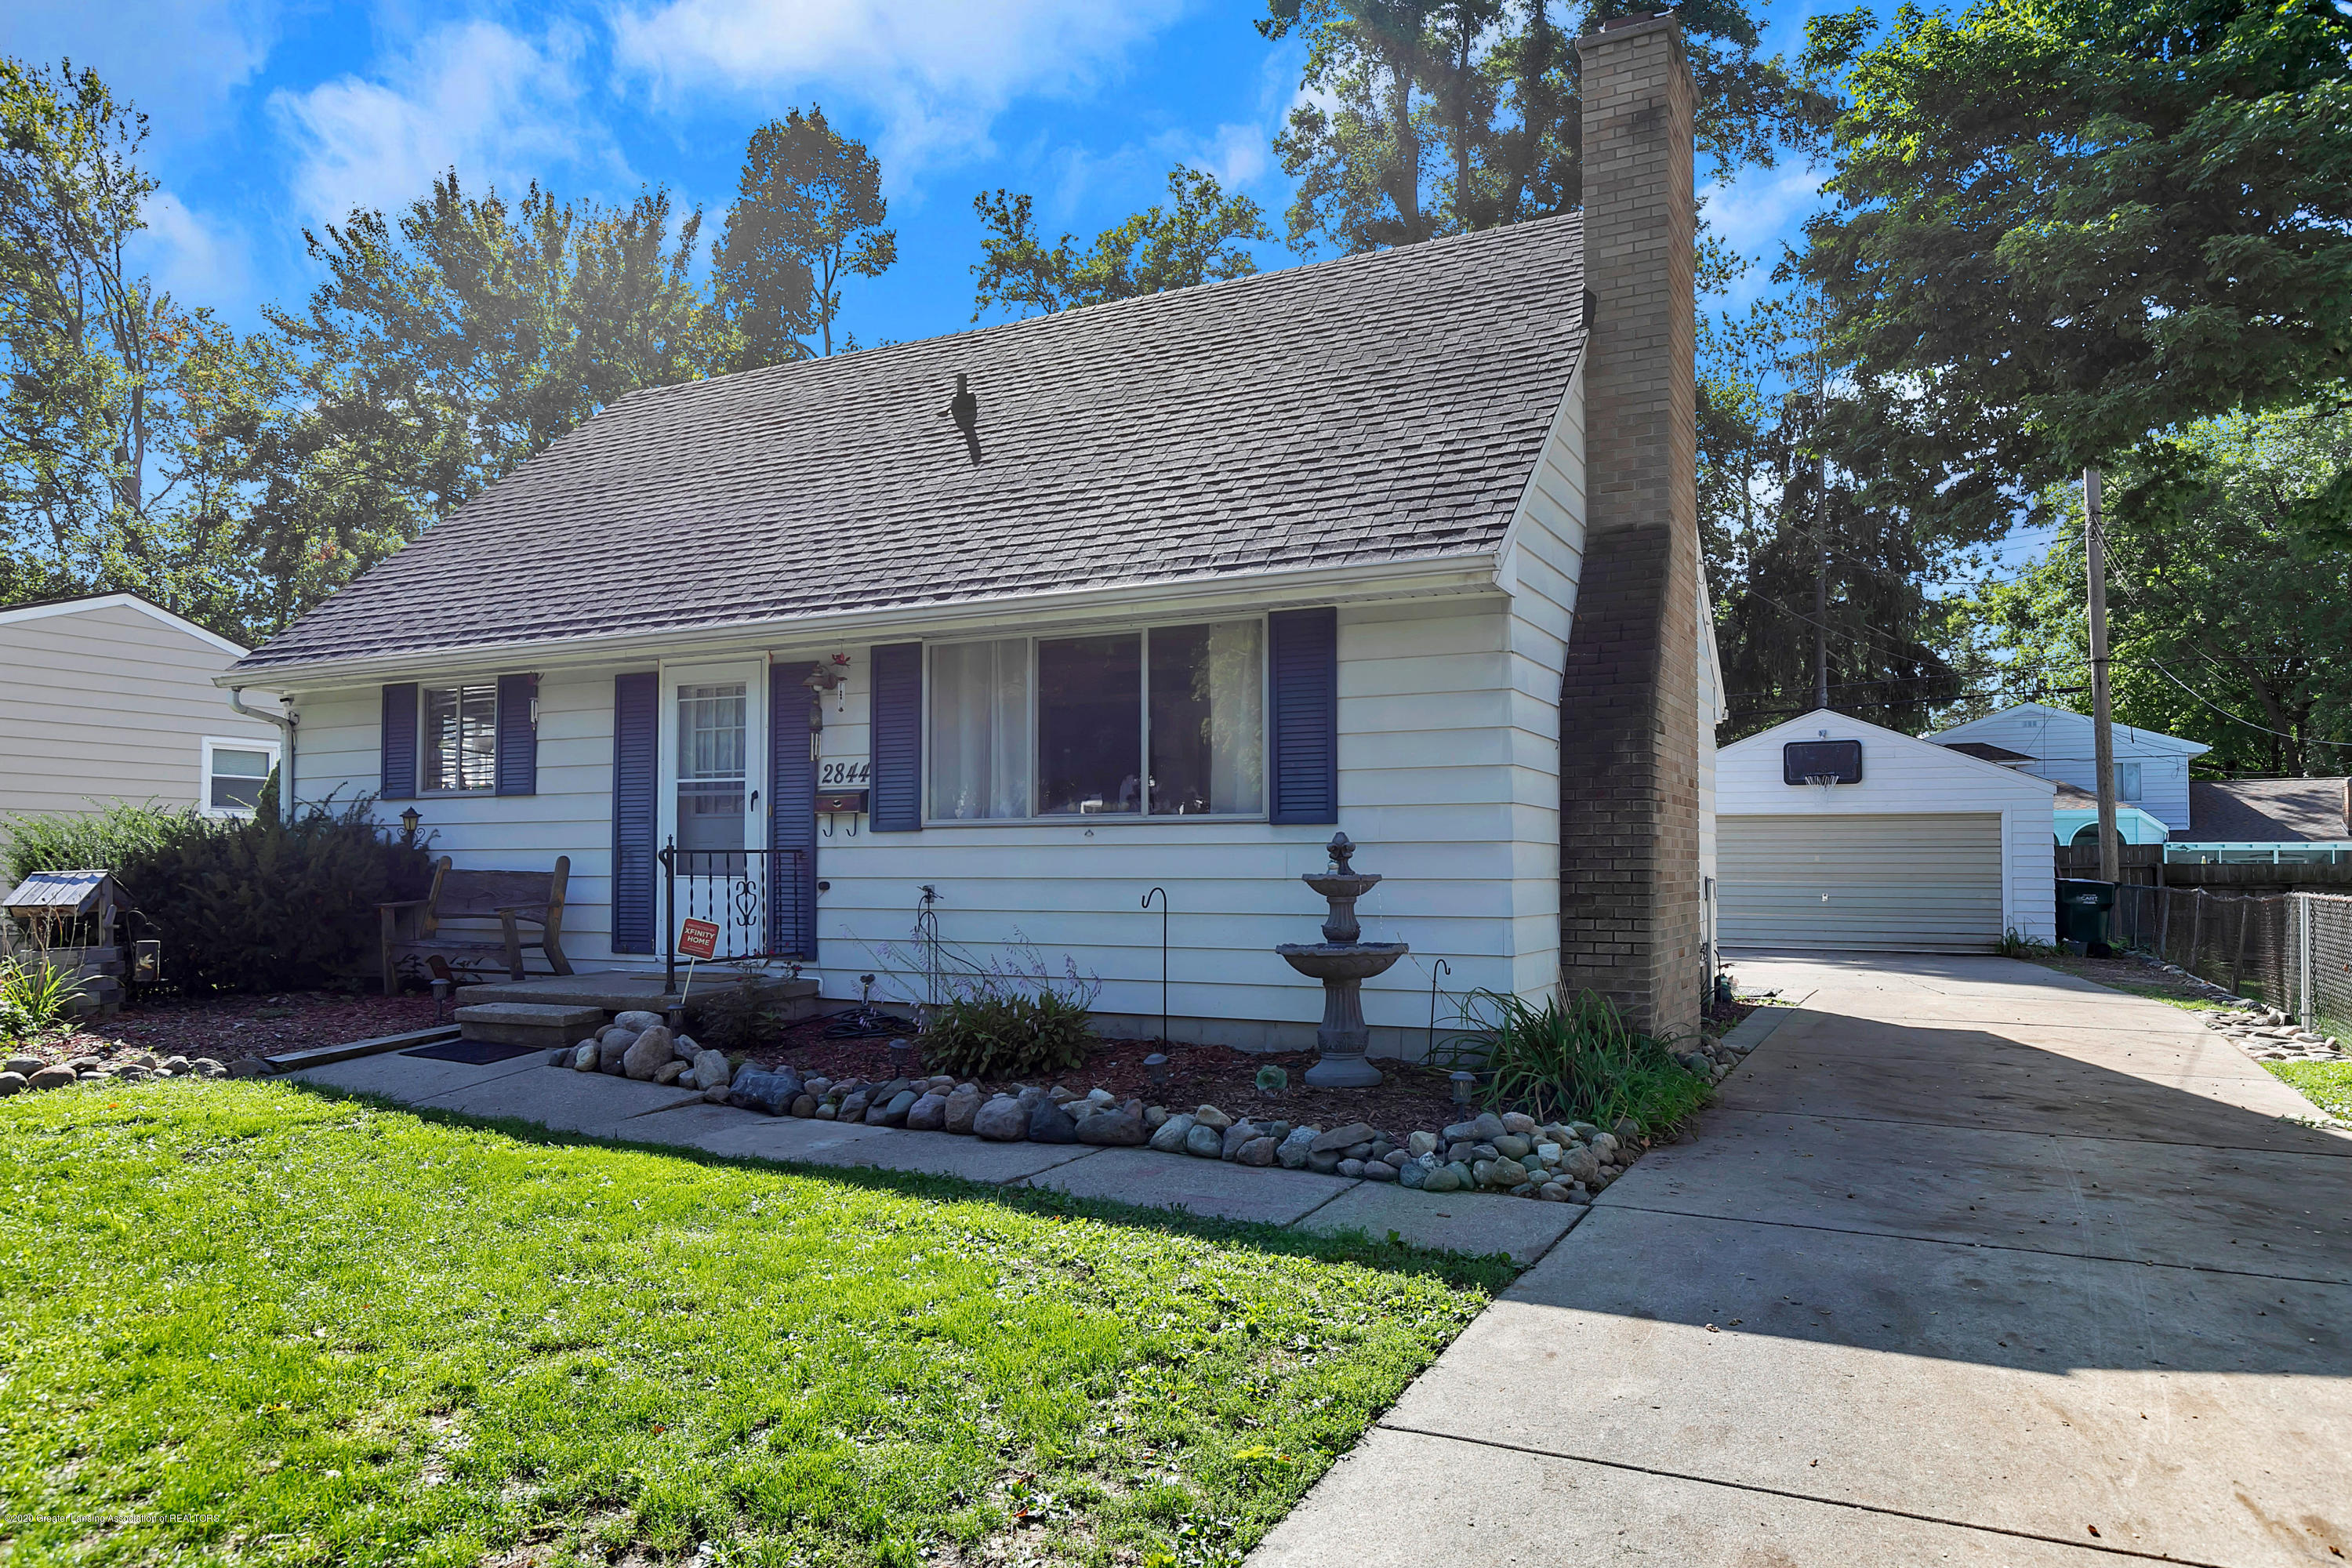 2844 S Deerfield Ave - 9I3A2601 - 2